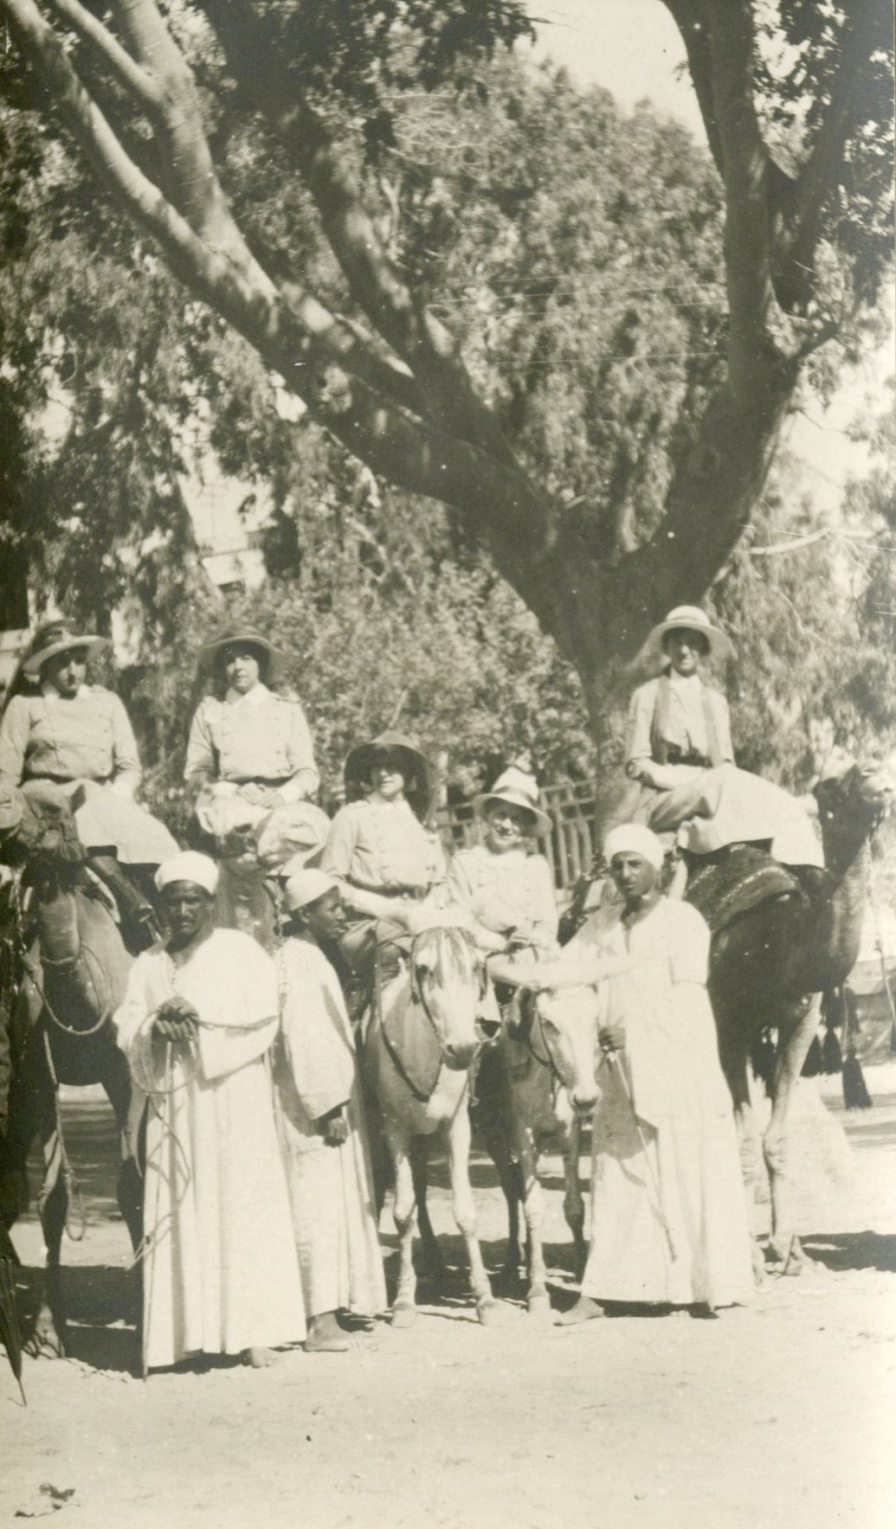 Our party in Cairo, May 1916. [Nursing sisters, including Alfreda Attrill] On special leave granted by Miss Drew.